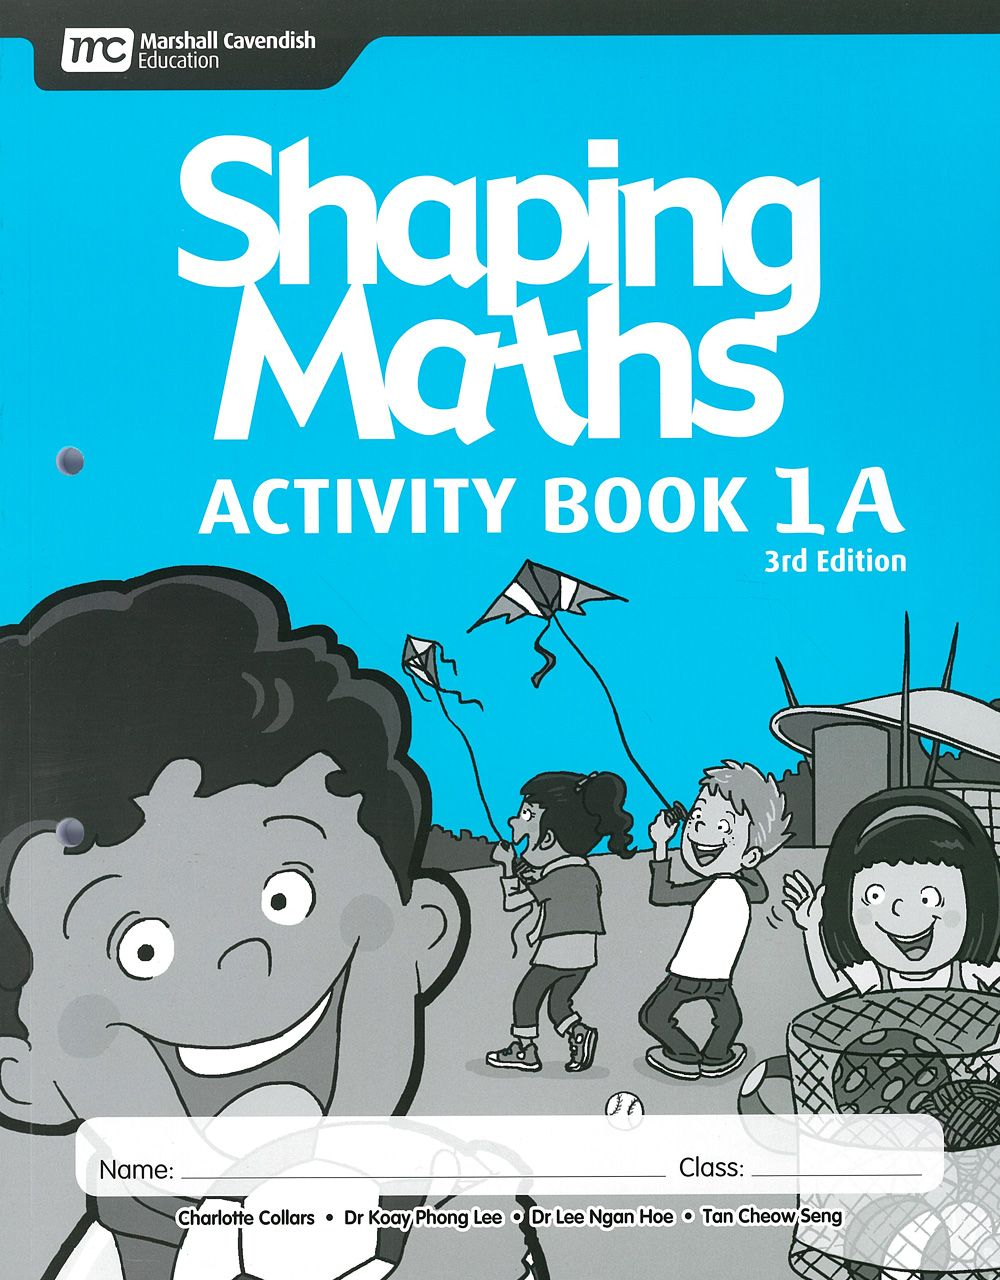 Shaping Maths Activity Book 1a 3rd Edition Book Activities Math Activities Math [ 1280 x 1000 Pixel ]